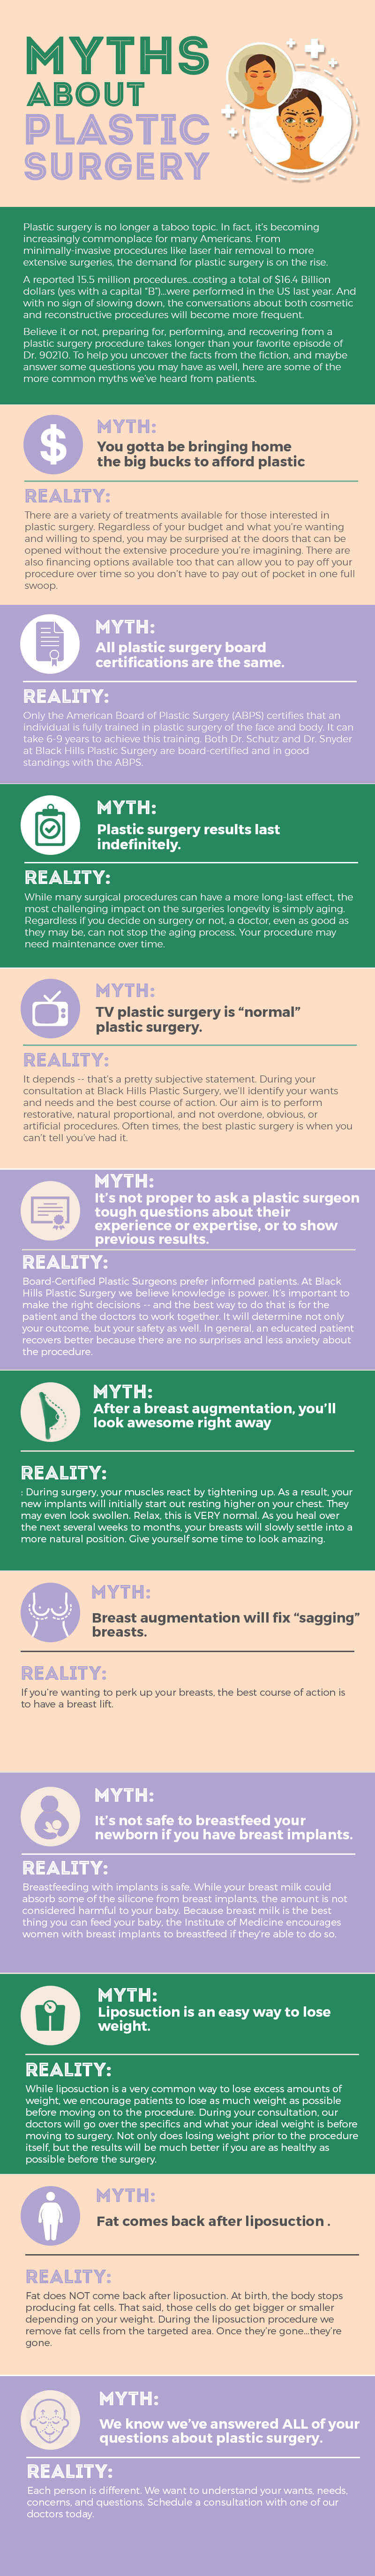 Plastic Surgery Myths - Black Hills Plastic Surgery - plastic surgery rapid city sd - cosmetic surgery - breast augmentation surgery - breast implants - tummy tuck - fat freezing - coolsculpting near me - Liposuction near me - botox near me - lip injections - juvederm voluma lips - laser hair removal near me - tattoo removal near me - mommy makeover - nose job